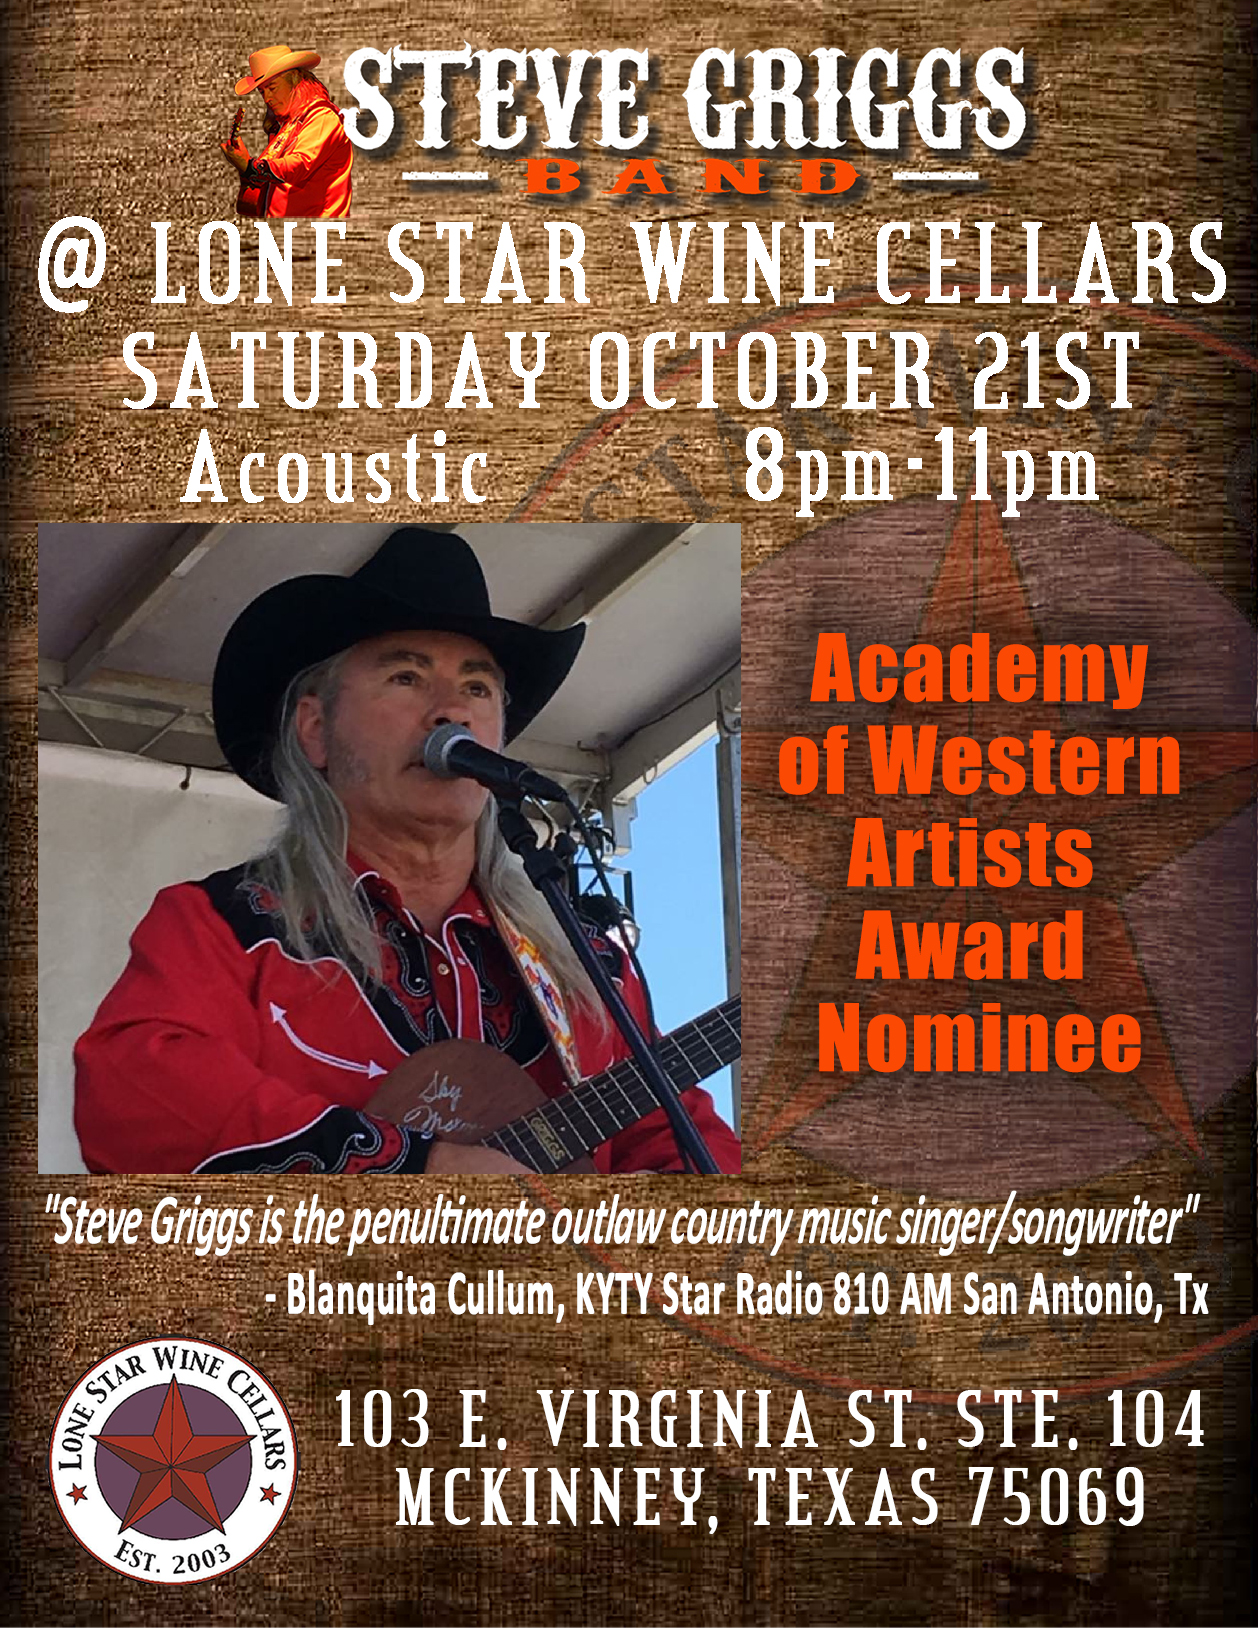 October 21st 800pm u2013 1100pm Lone Star Wine Cellars 103 E. Virgina St. Ste. 104 McKinney Texas 75069. We hope to see you there!  sc 1 st  Steve Griggs Band & Lone Star Wine Cellars - October 21st - Steve Griggs Band